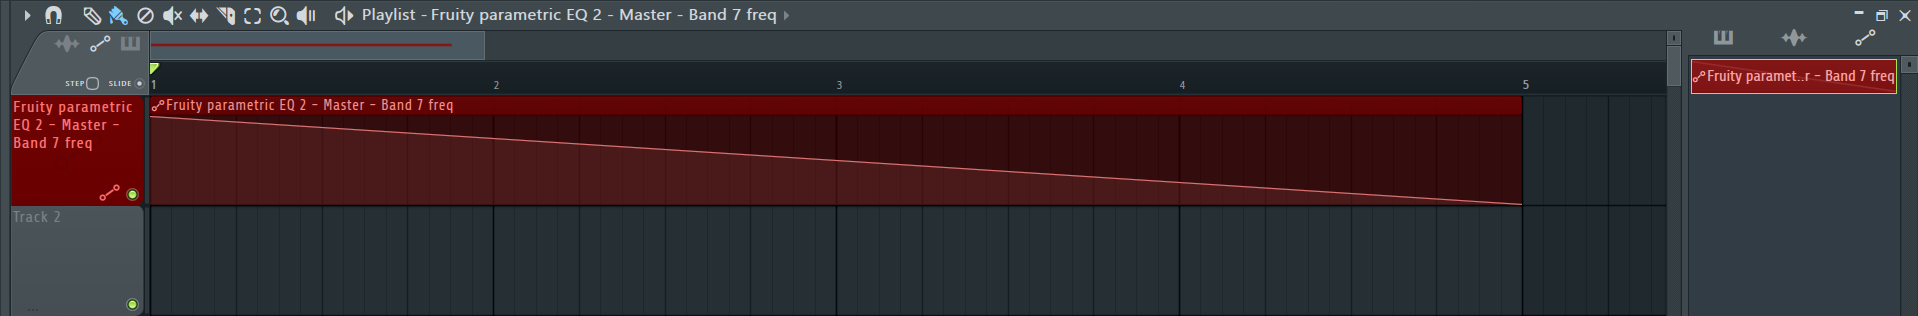 How to Make an Automation Clip in FL Studio_4 - Tweaked Automation Clip